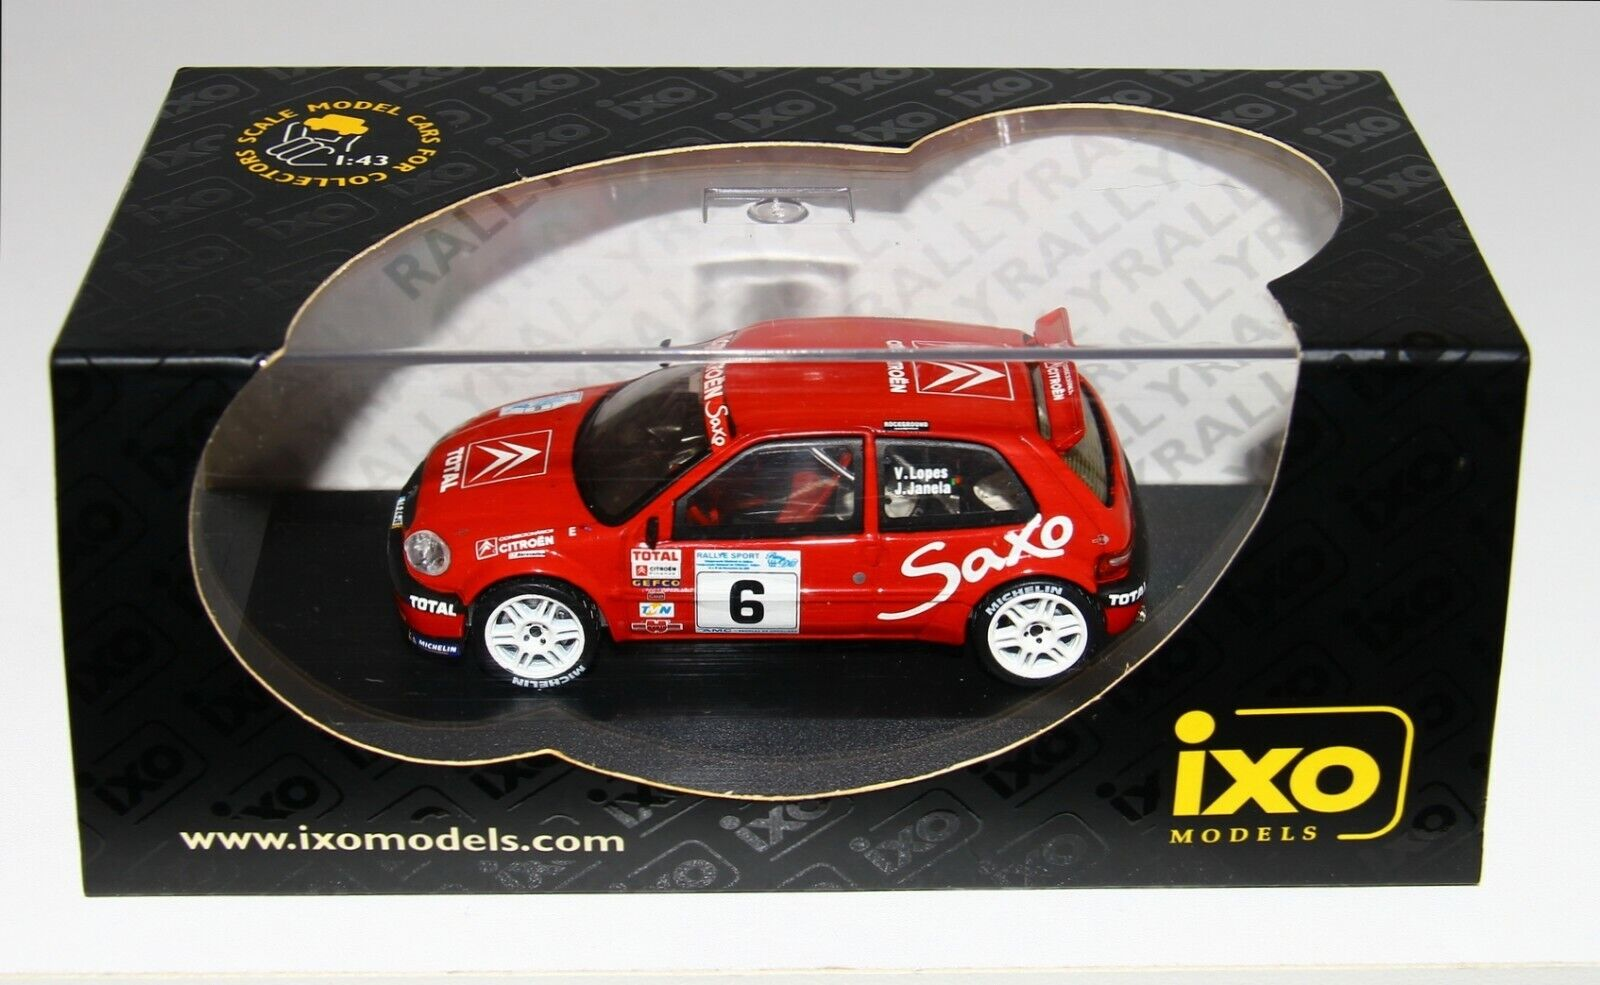 Ixo Limited 1 43 Citroen Saxo S1600 Kit Coche rojoa do Dao Rallye 2001 Lopes RARE